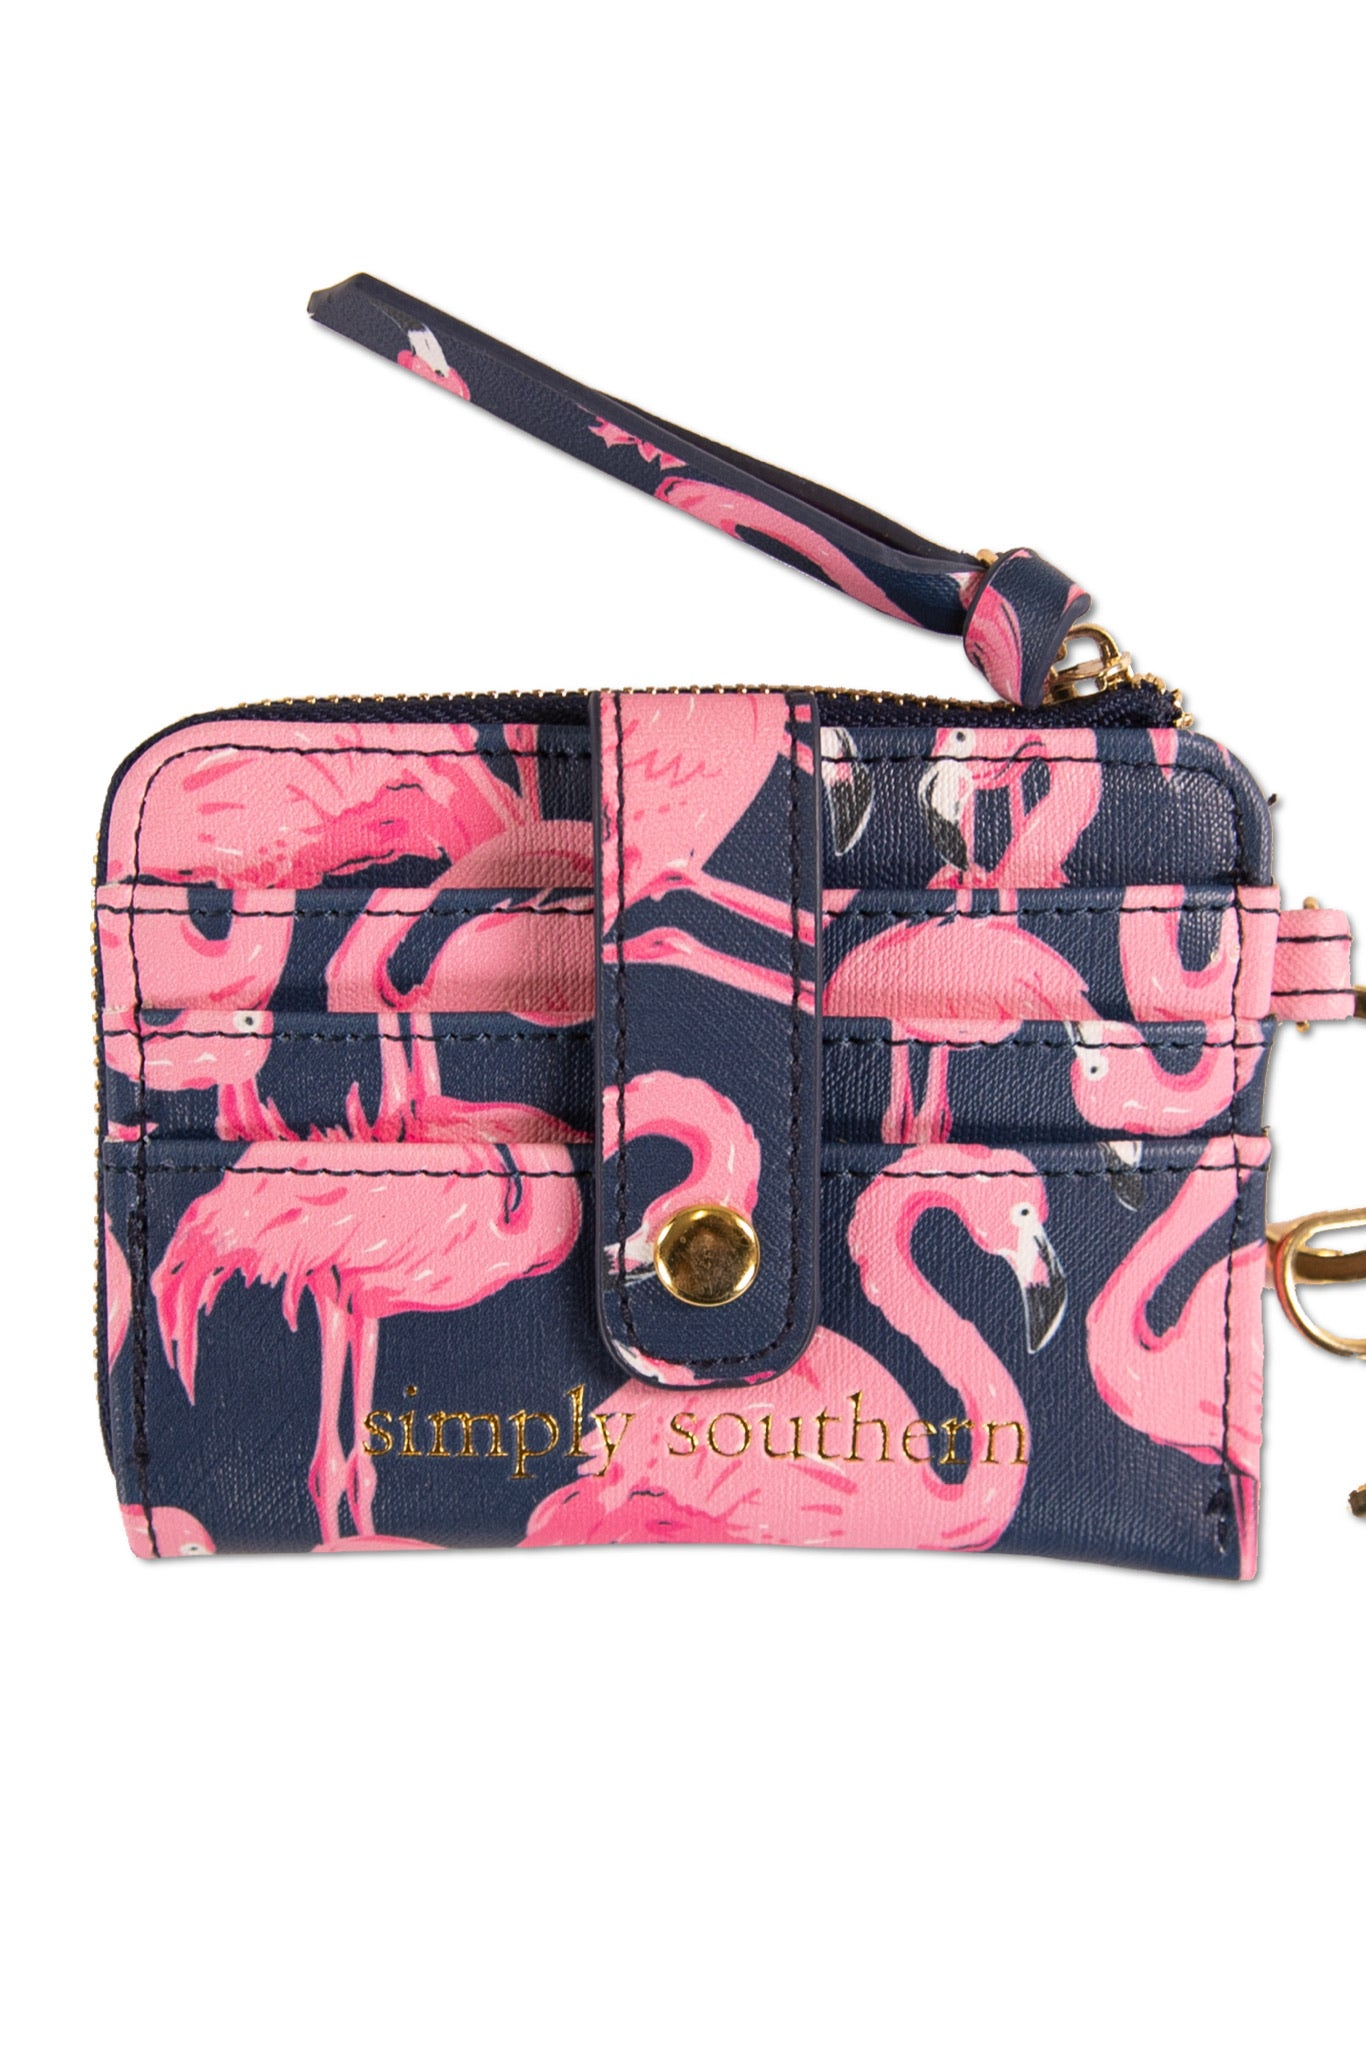 Leather Key ID Wallet by Simply Southern